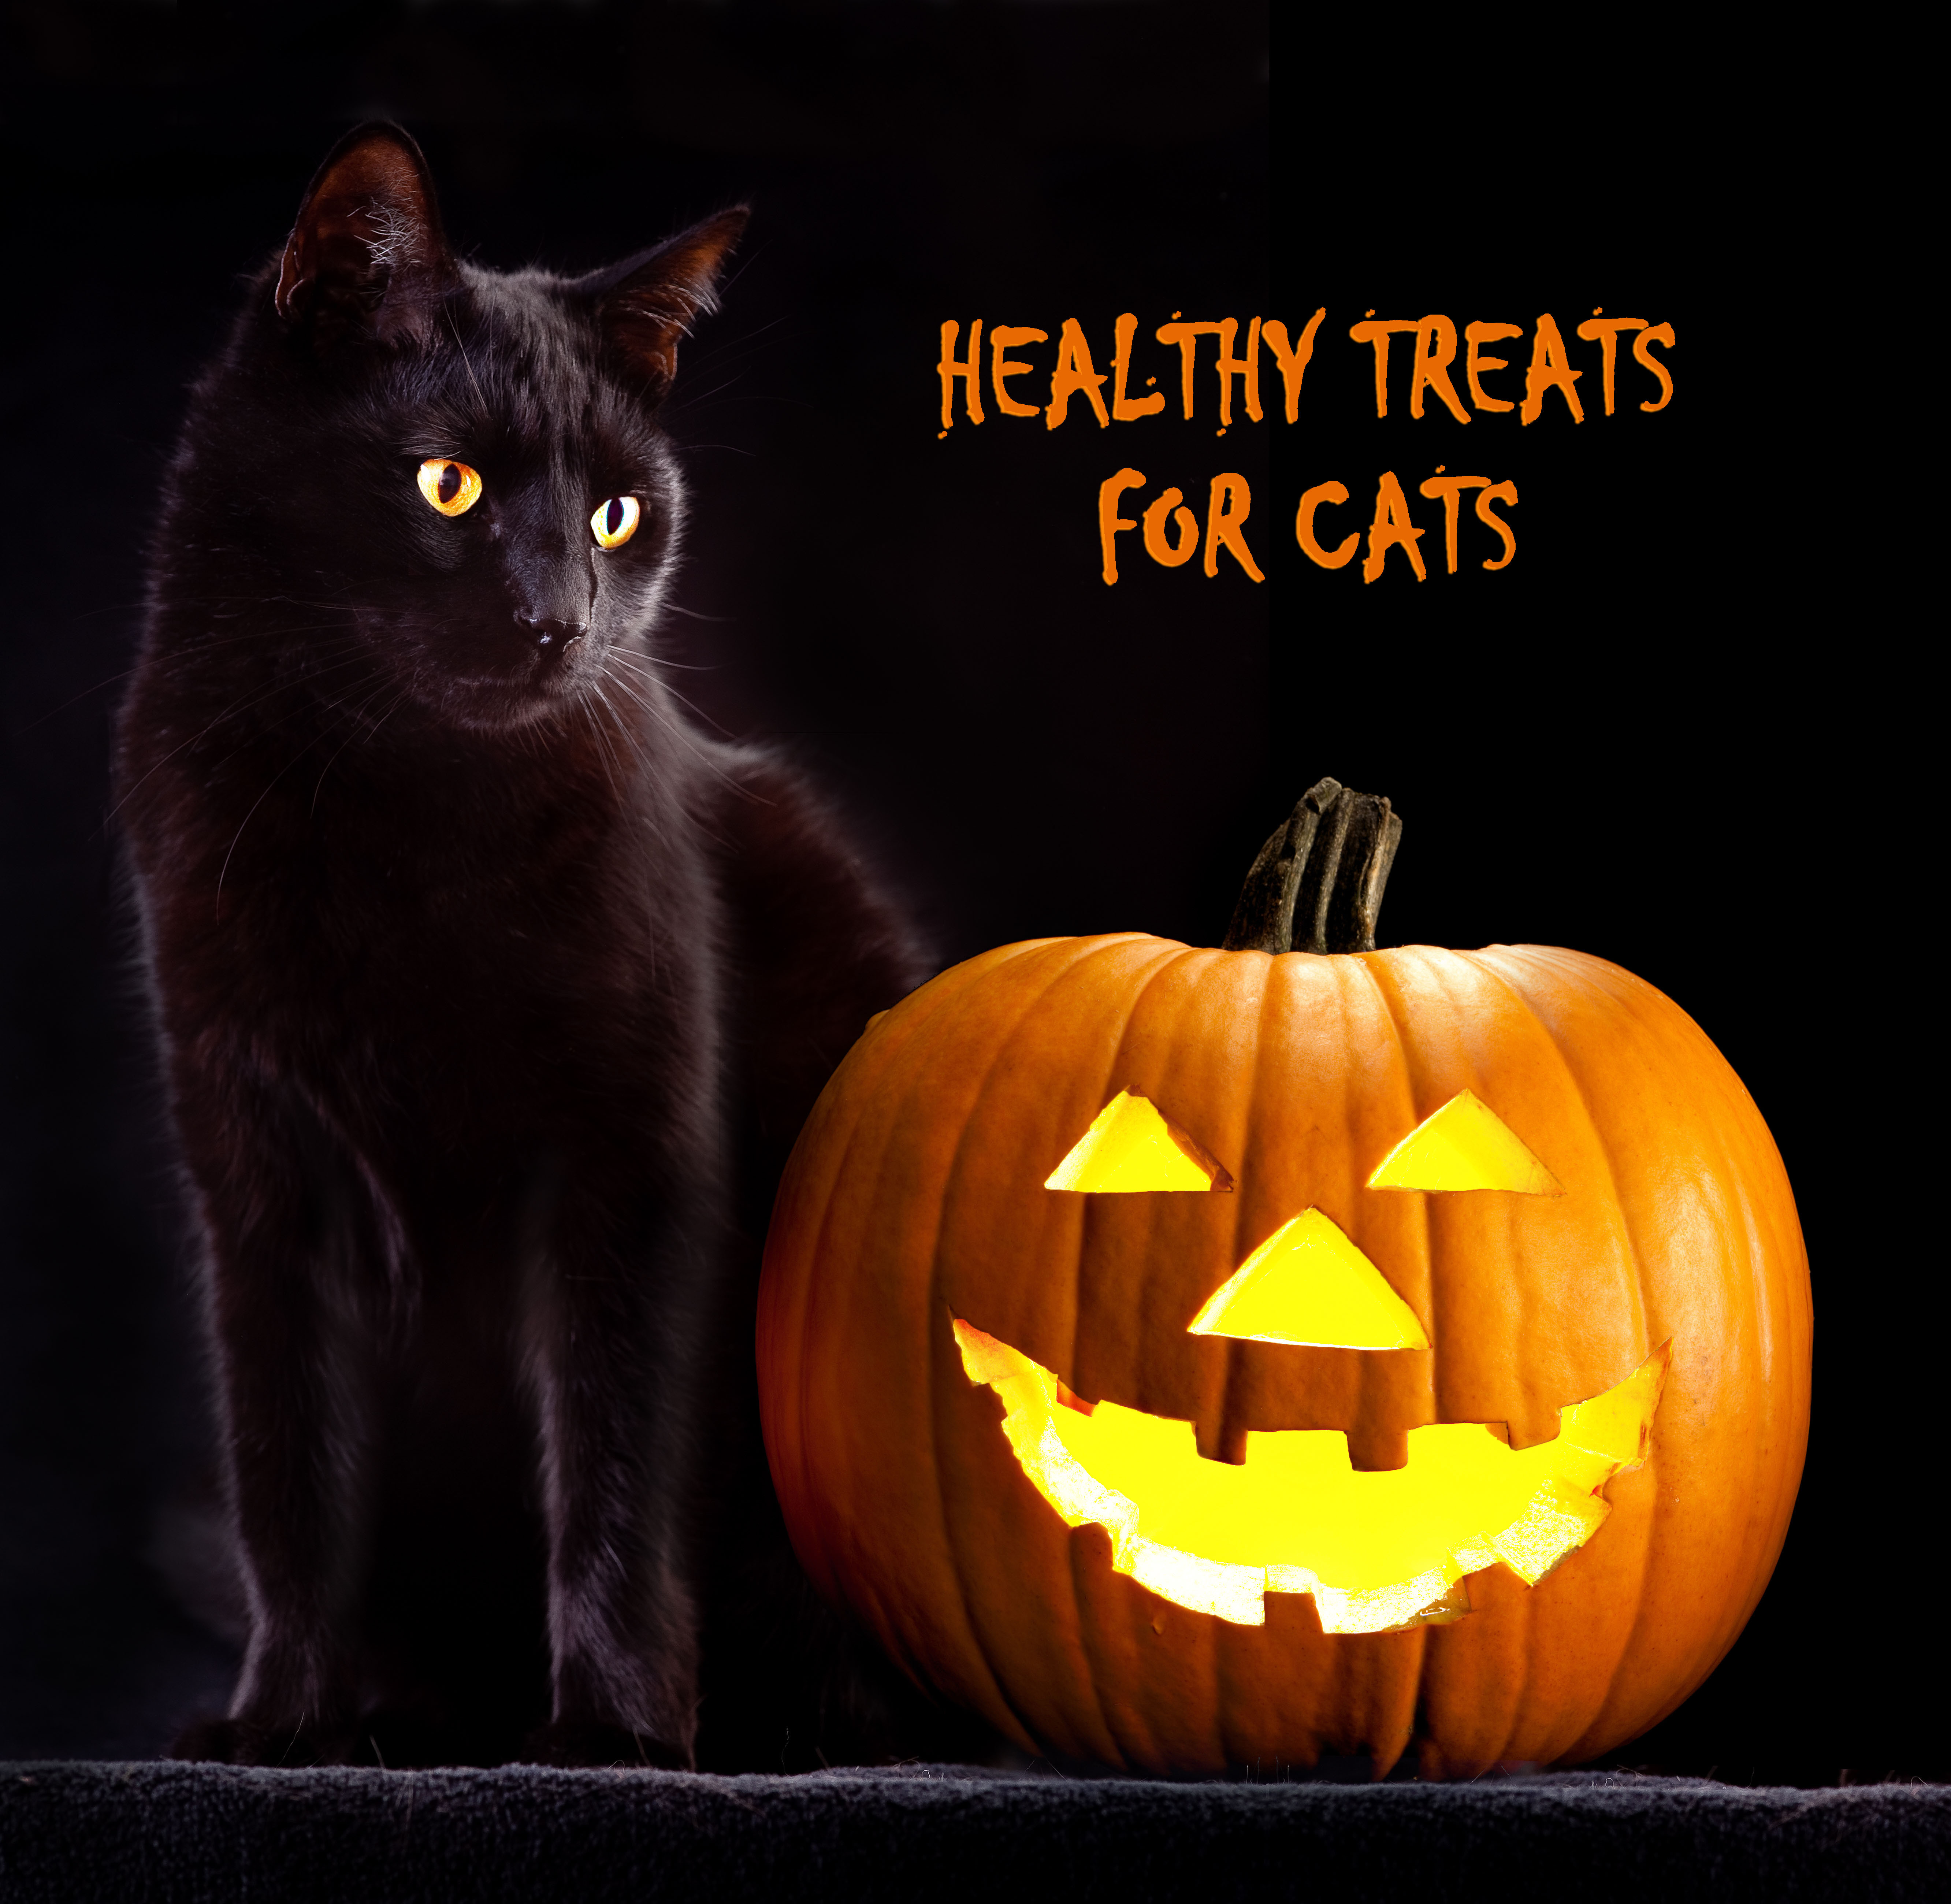 Healthy Snacks For Cats  Healthy Treats to Give Your Pets on Halloween Allivet